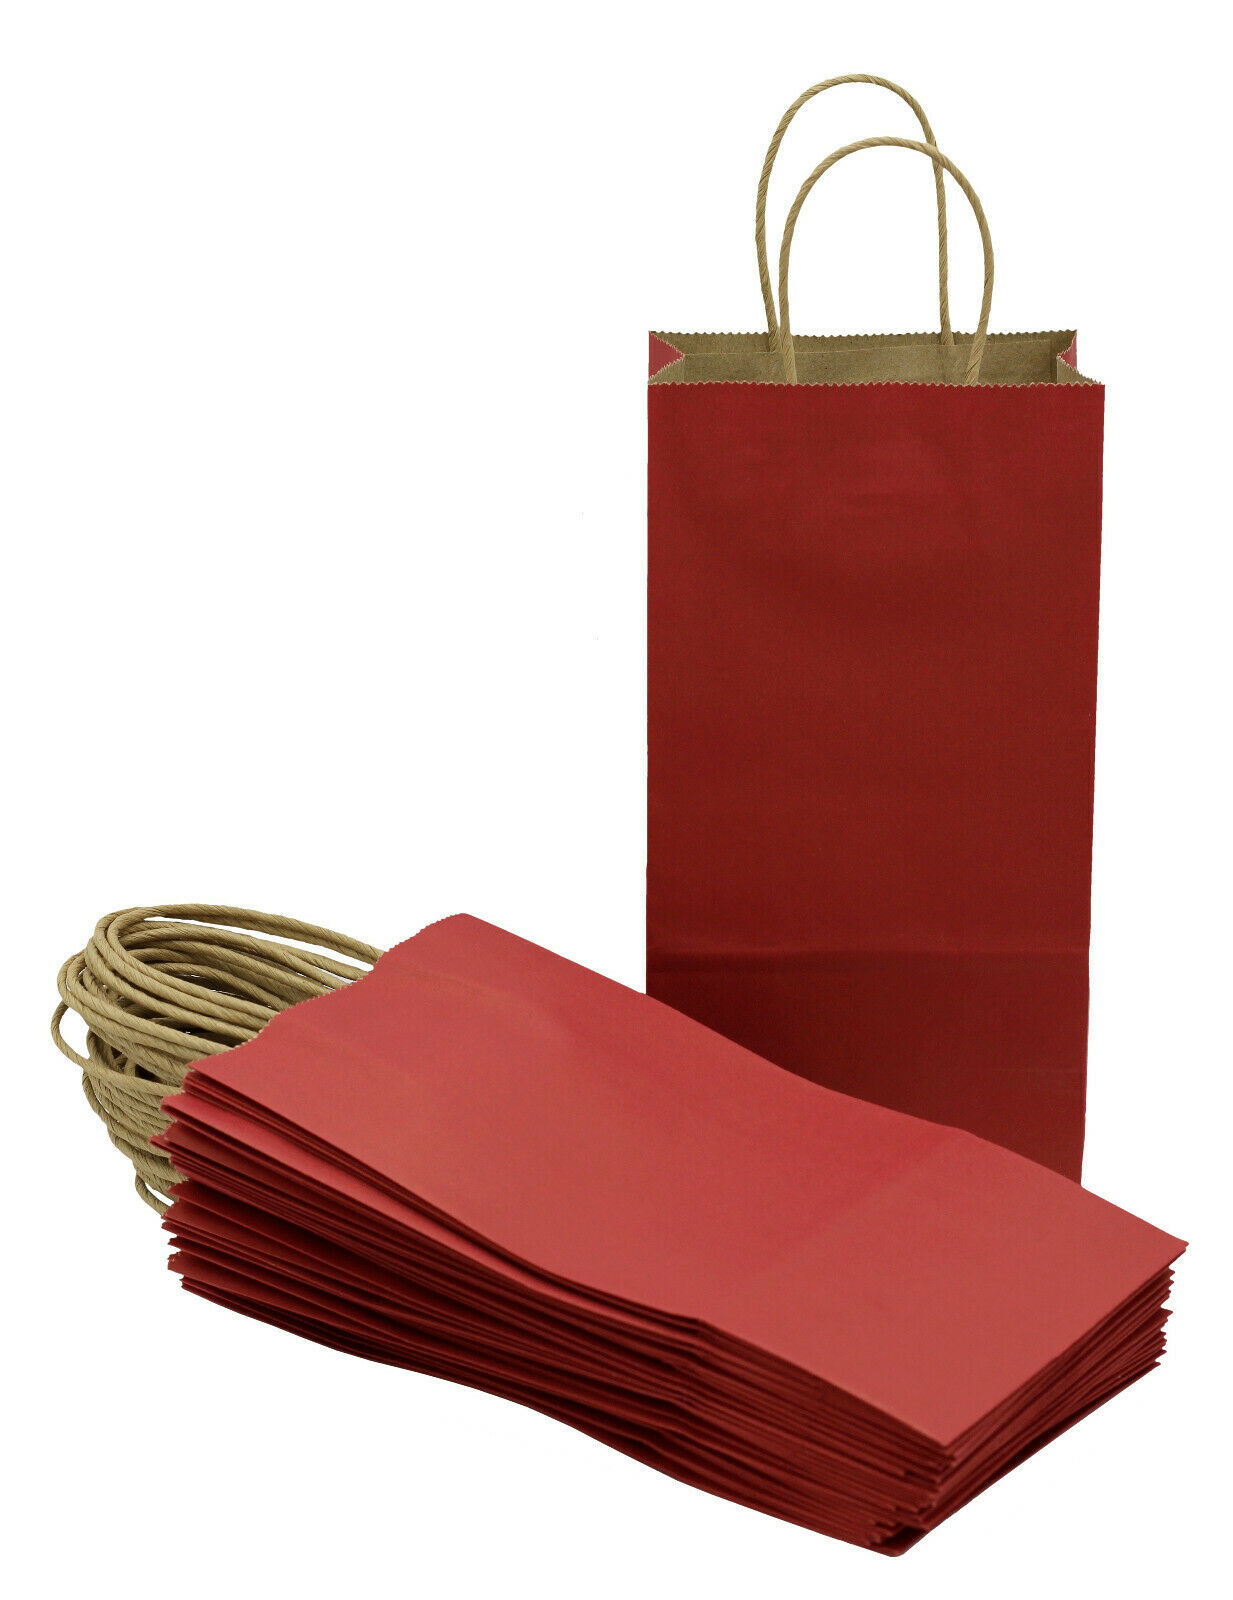 Small Paper Gift Handle Bags, 5.25″ x 3″ x 8.5″ Size, Deep Red, 24 Piece Pack Gift Bags